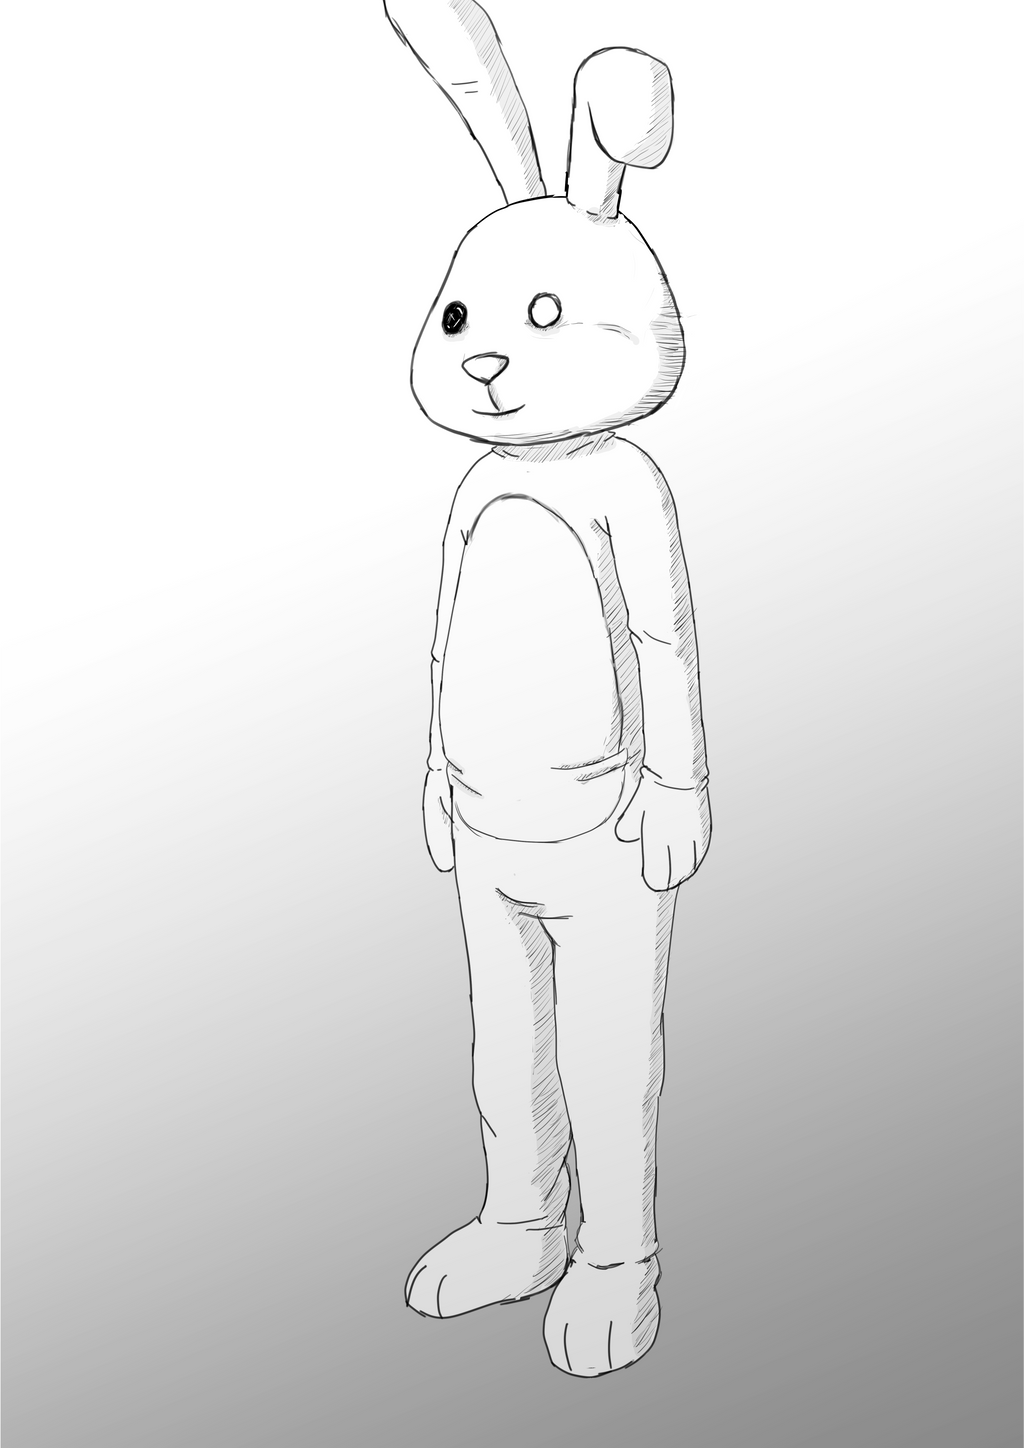 bunny Sketch by wishes0007